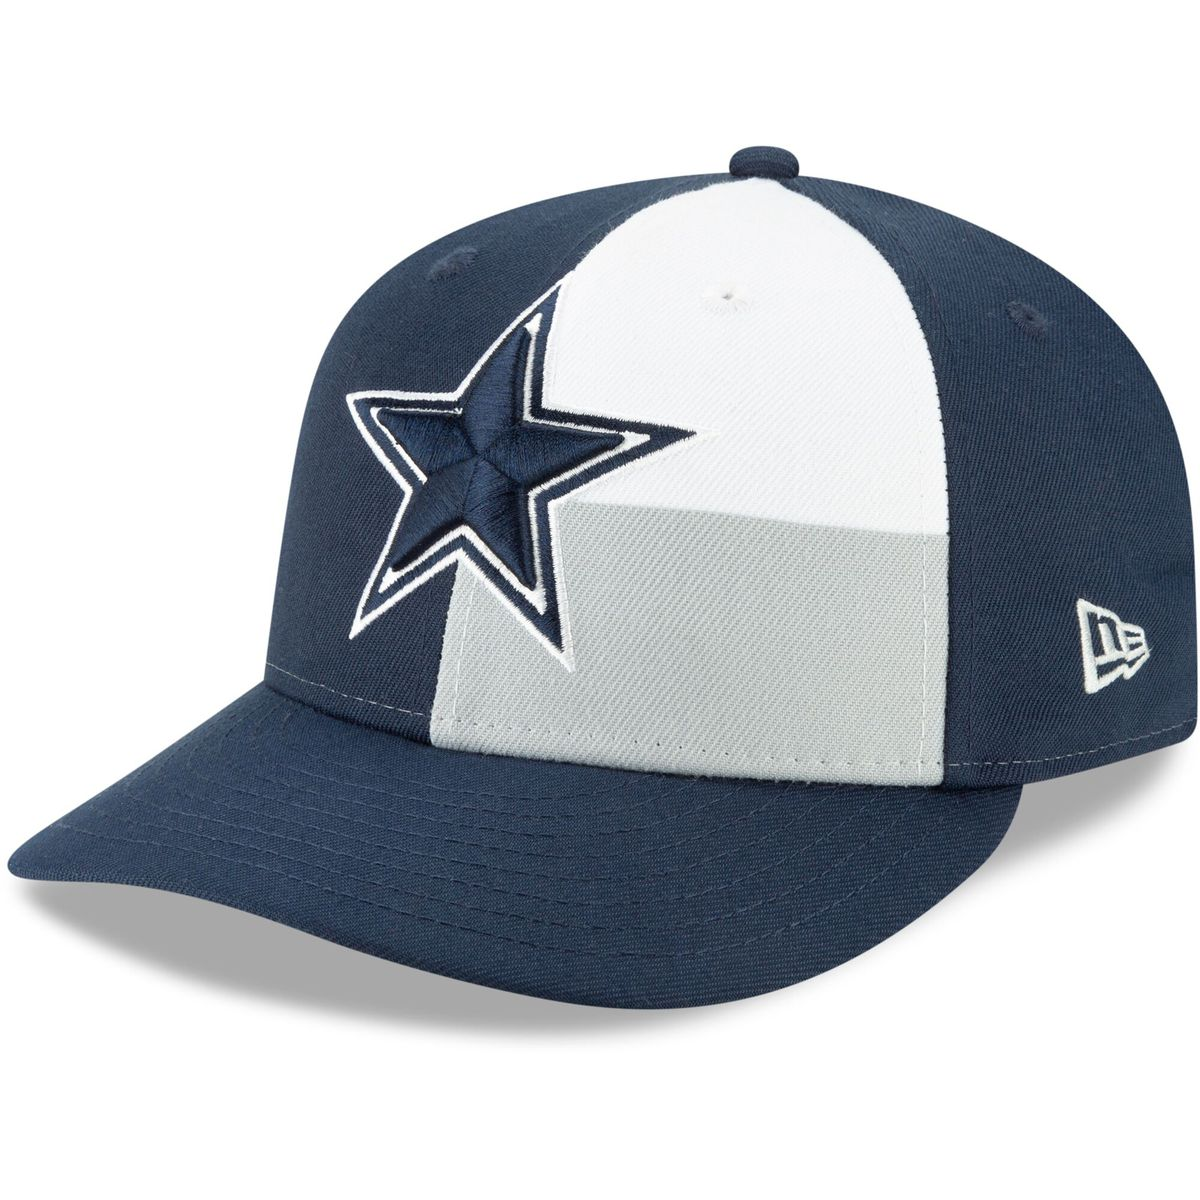 d321ad1f8a6633 Dallas Cowboys New Era On Stage Official Low Profile 59FIFTY for $37.99  Fanatics